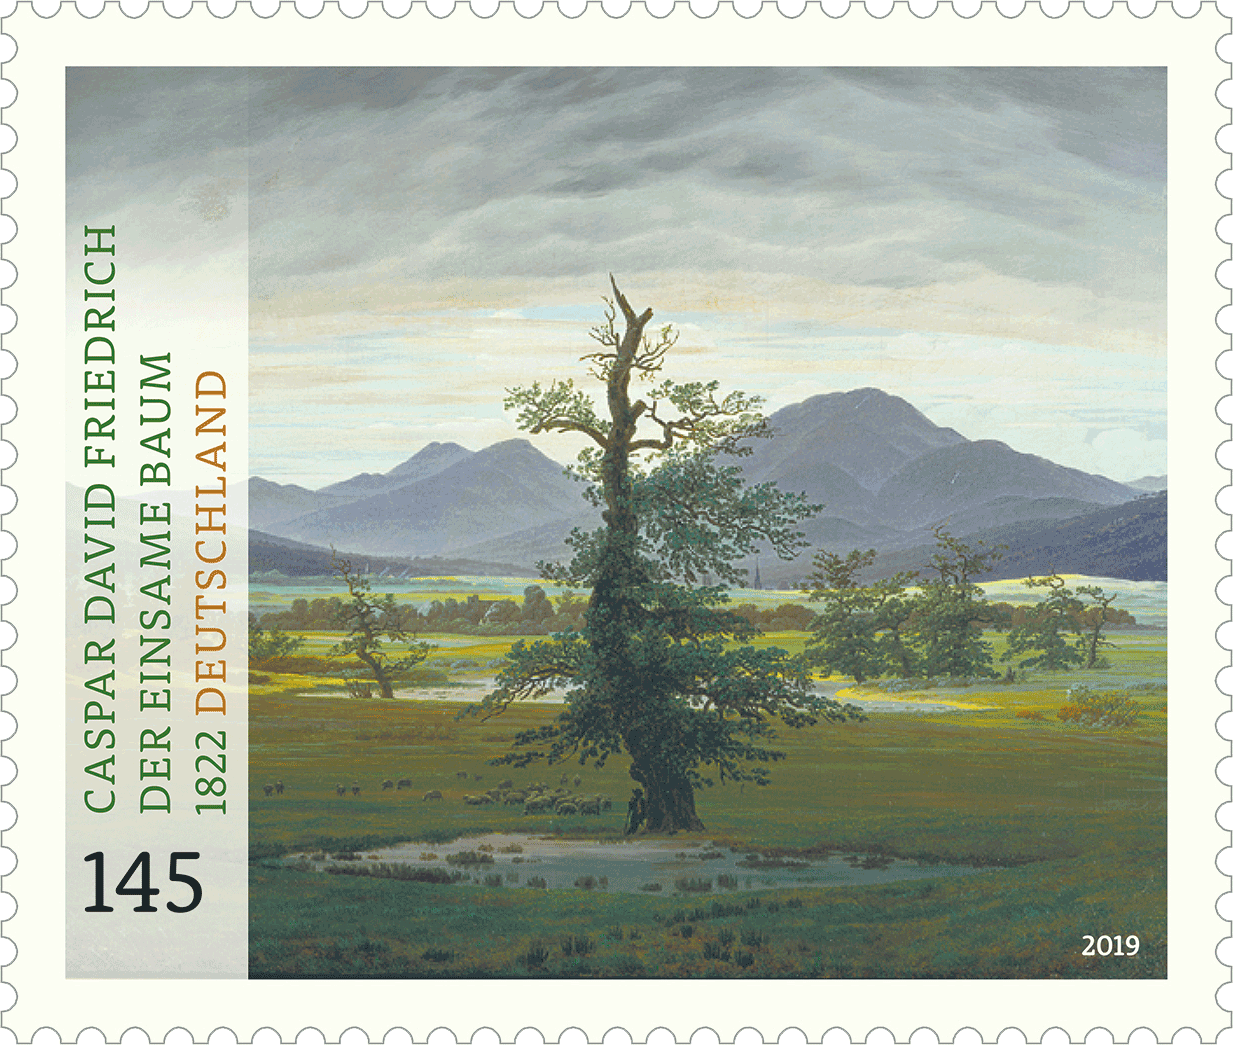 https://www.borek.de/briefmarke-caspar-david-friedrich-der-einsame-baum